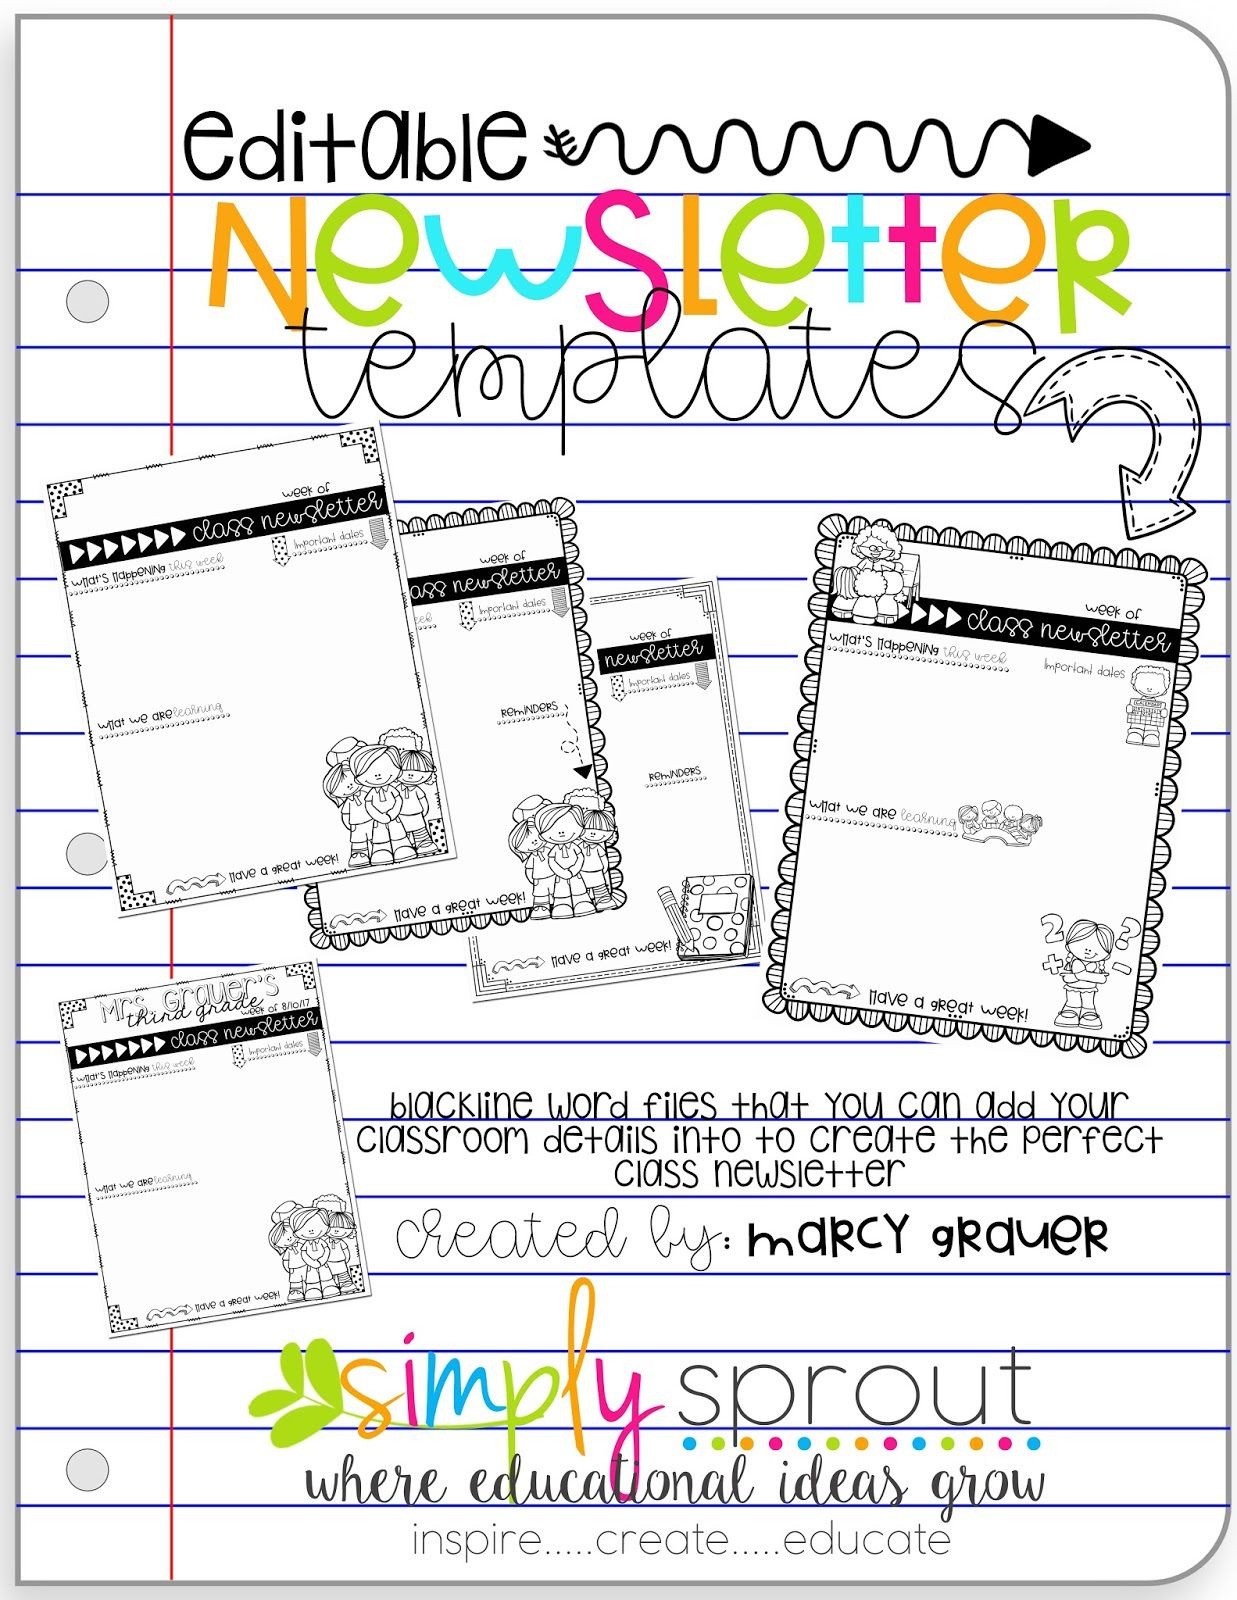 009 Astounding School Newsletter Template Free Image  Word Download CounselorFull